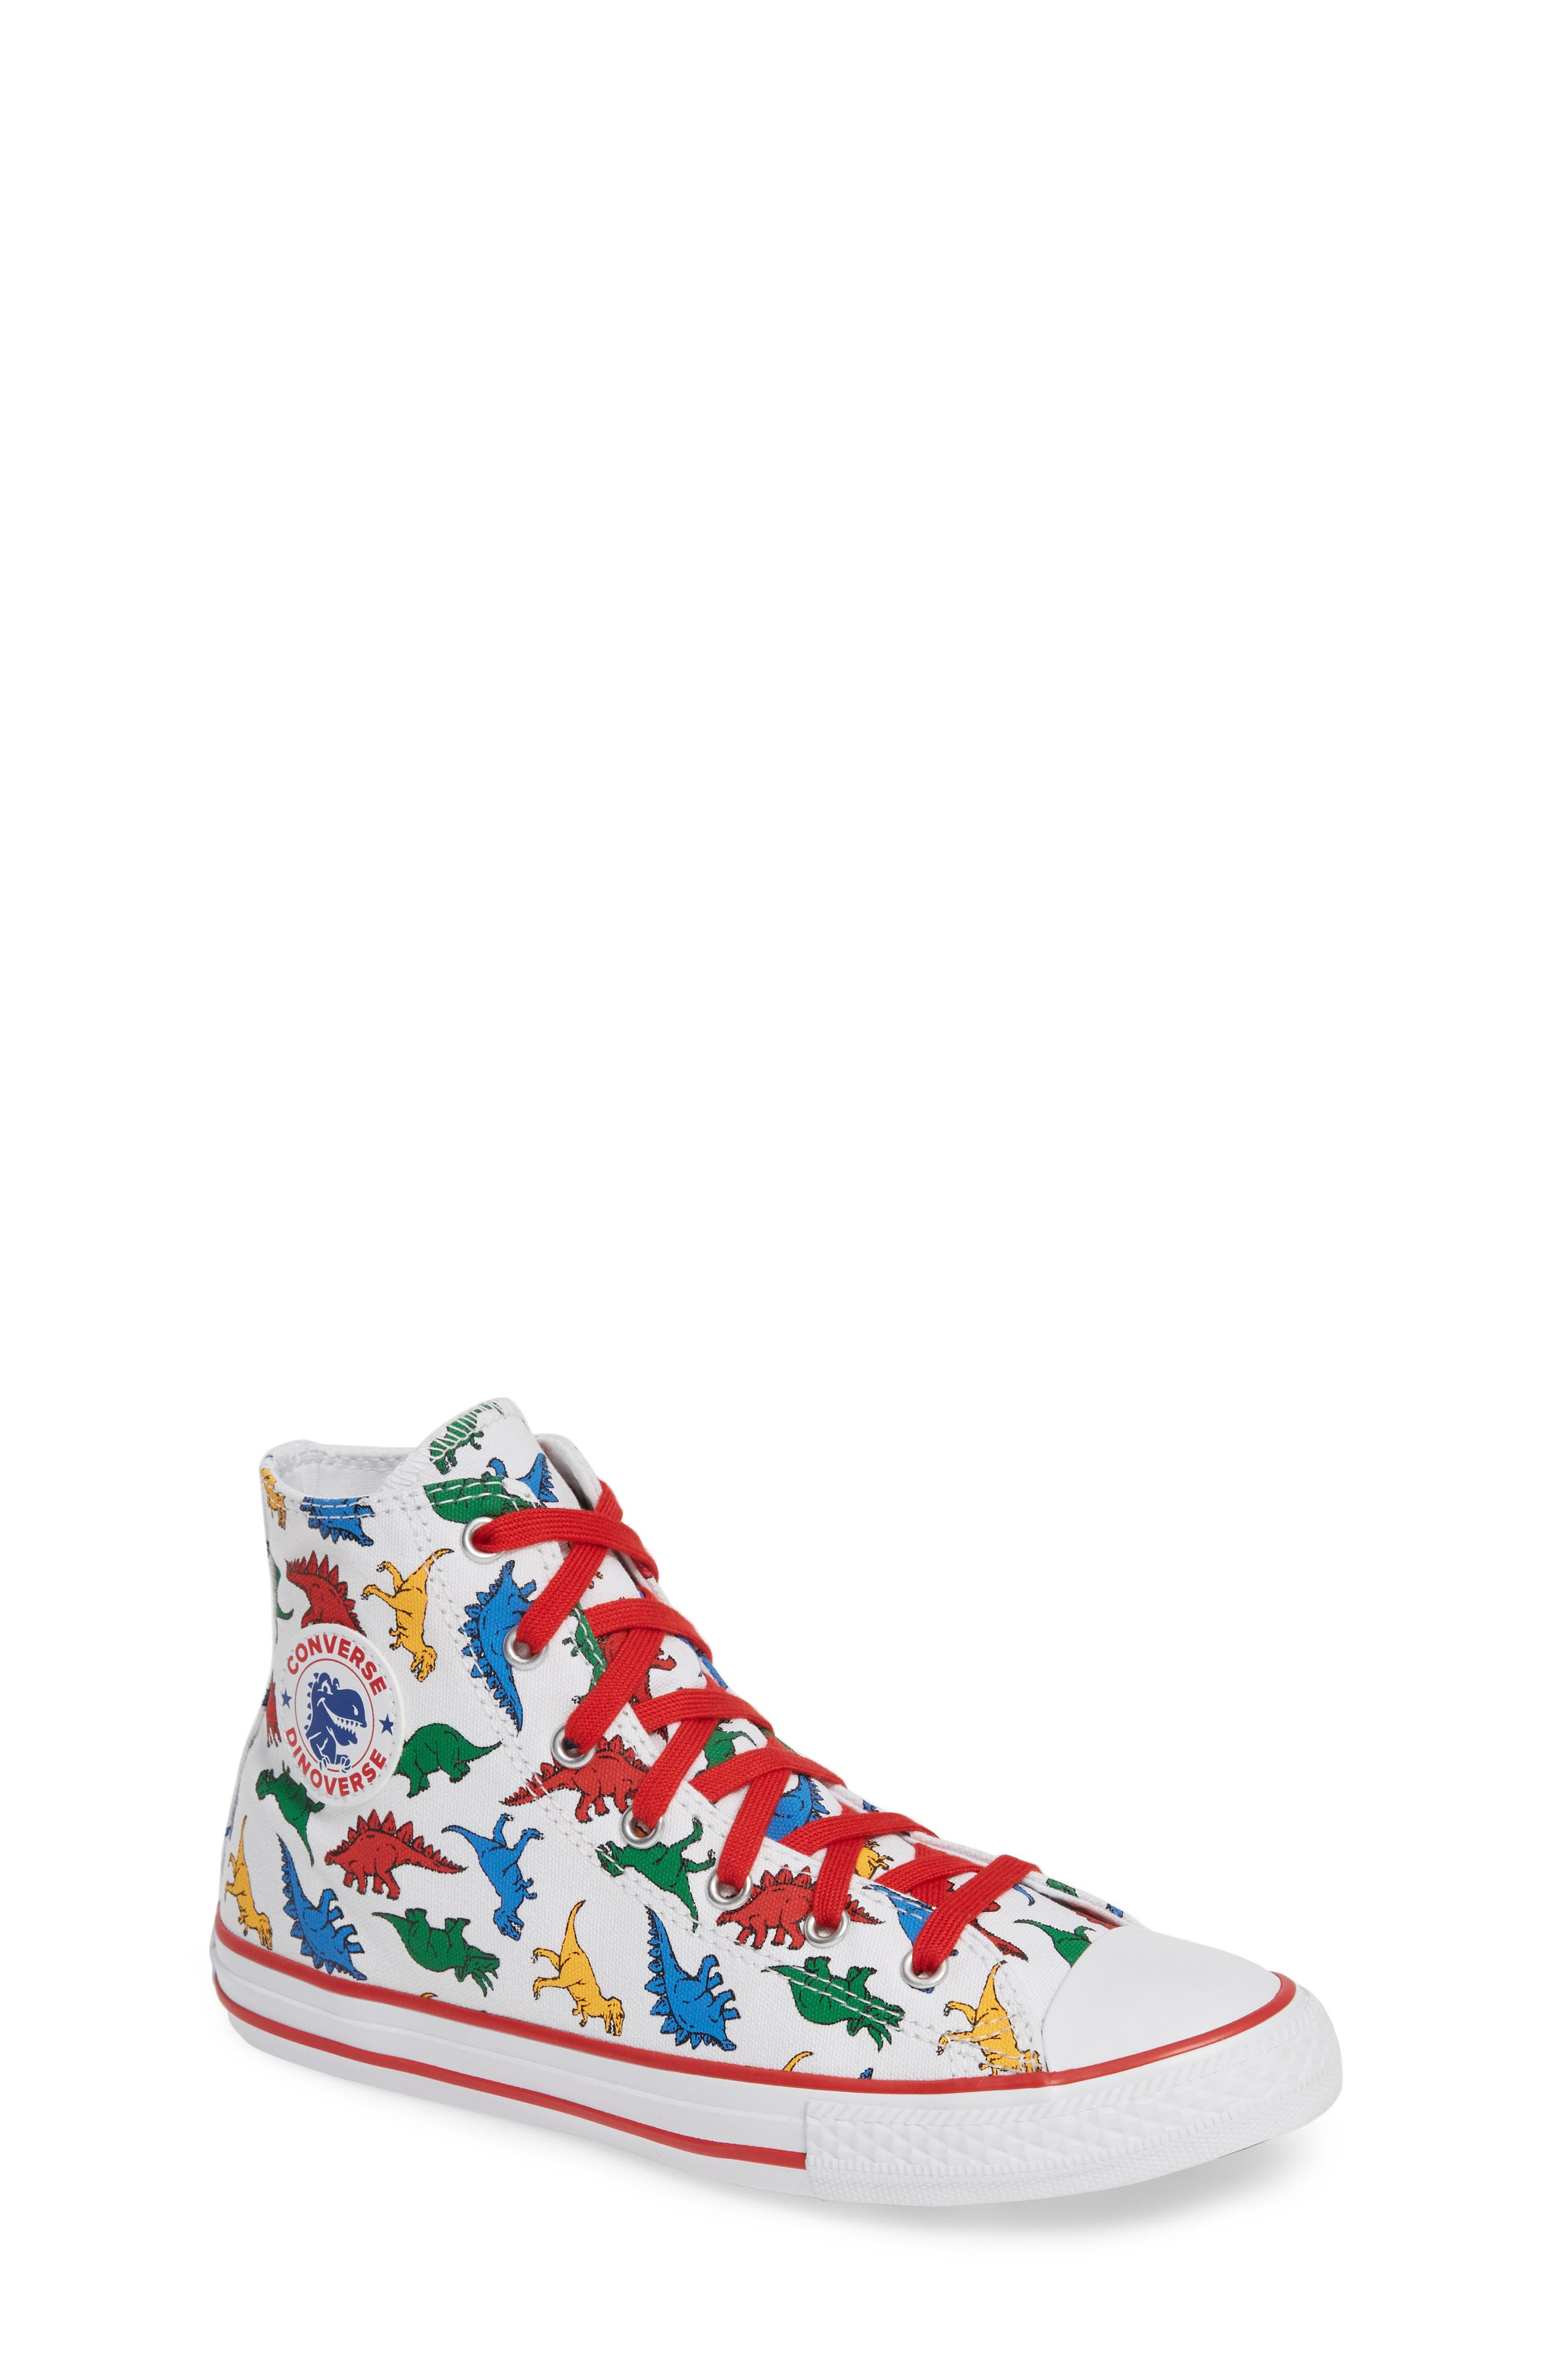 CONVERSE Chuck Taylor<sup>®</sup> All Star<sup>®</sup> Dino High Top Sneaker, Main, color, WHITE/ ENAMEL RED/ BLUE DINO